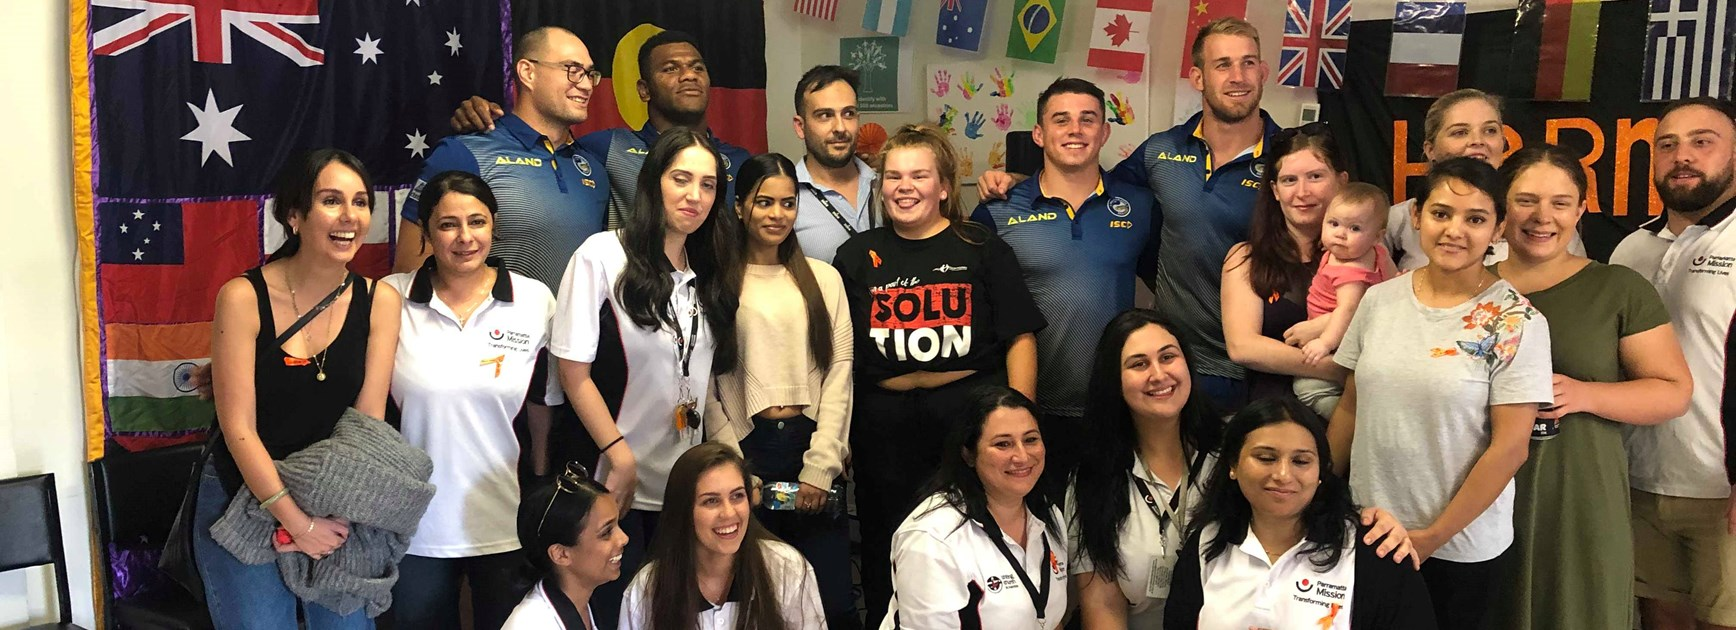 Eels attend Parramatta Mission Harmony Day event